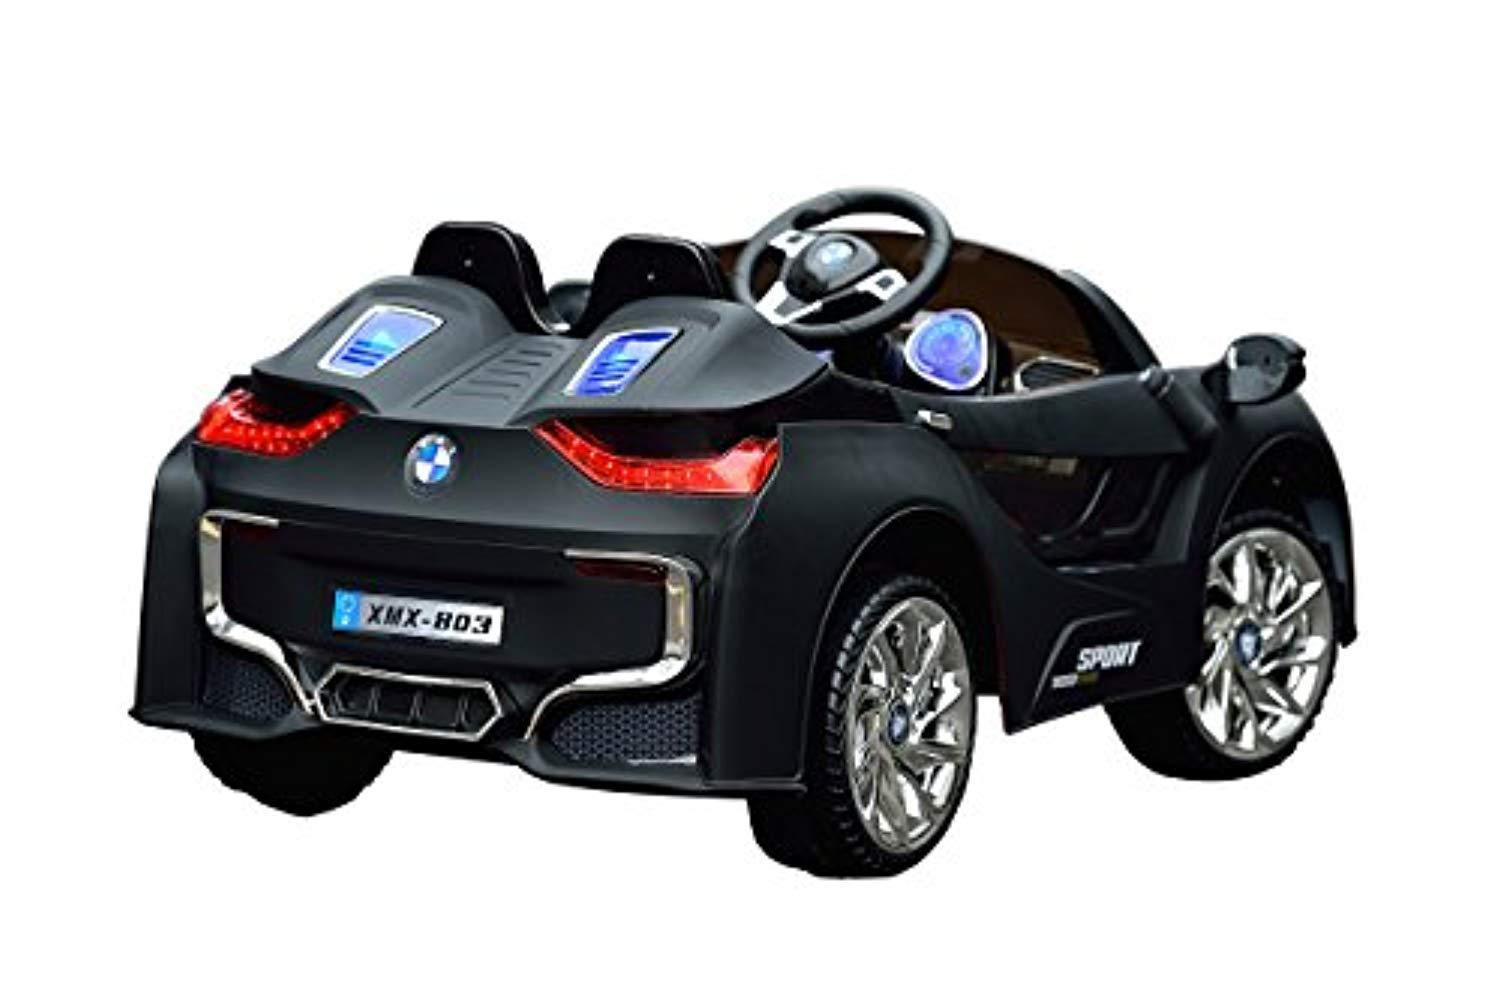 Kidone I8 Style Concept Ride On Toy Car 12v Electric Battery Powered